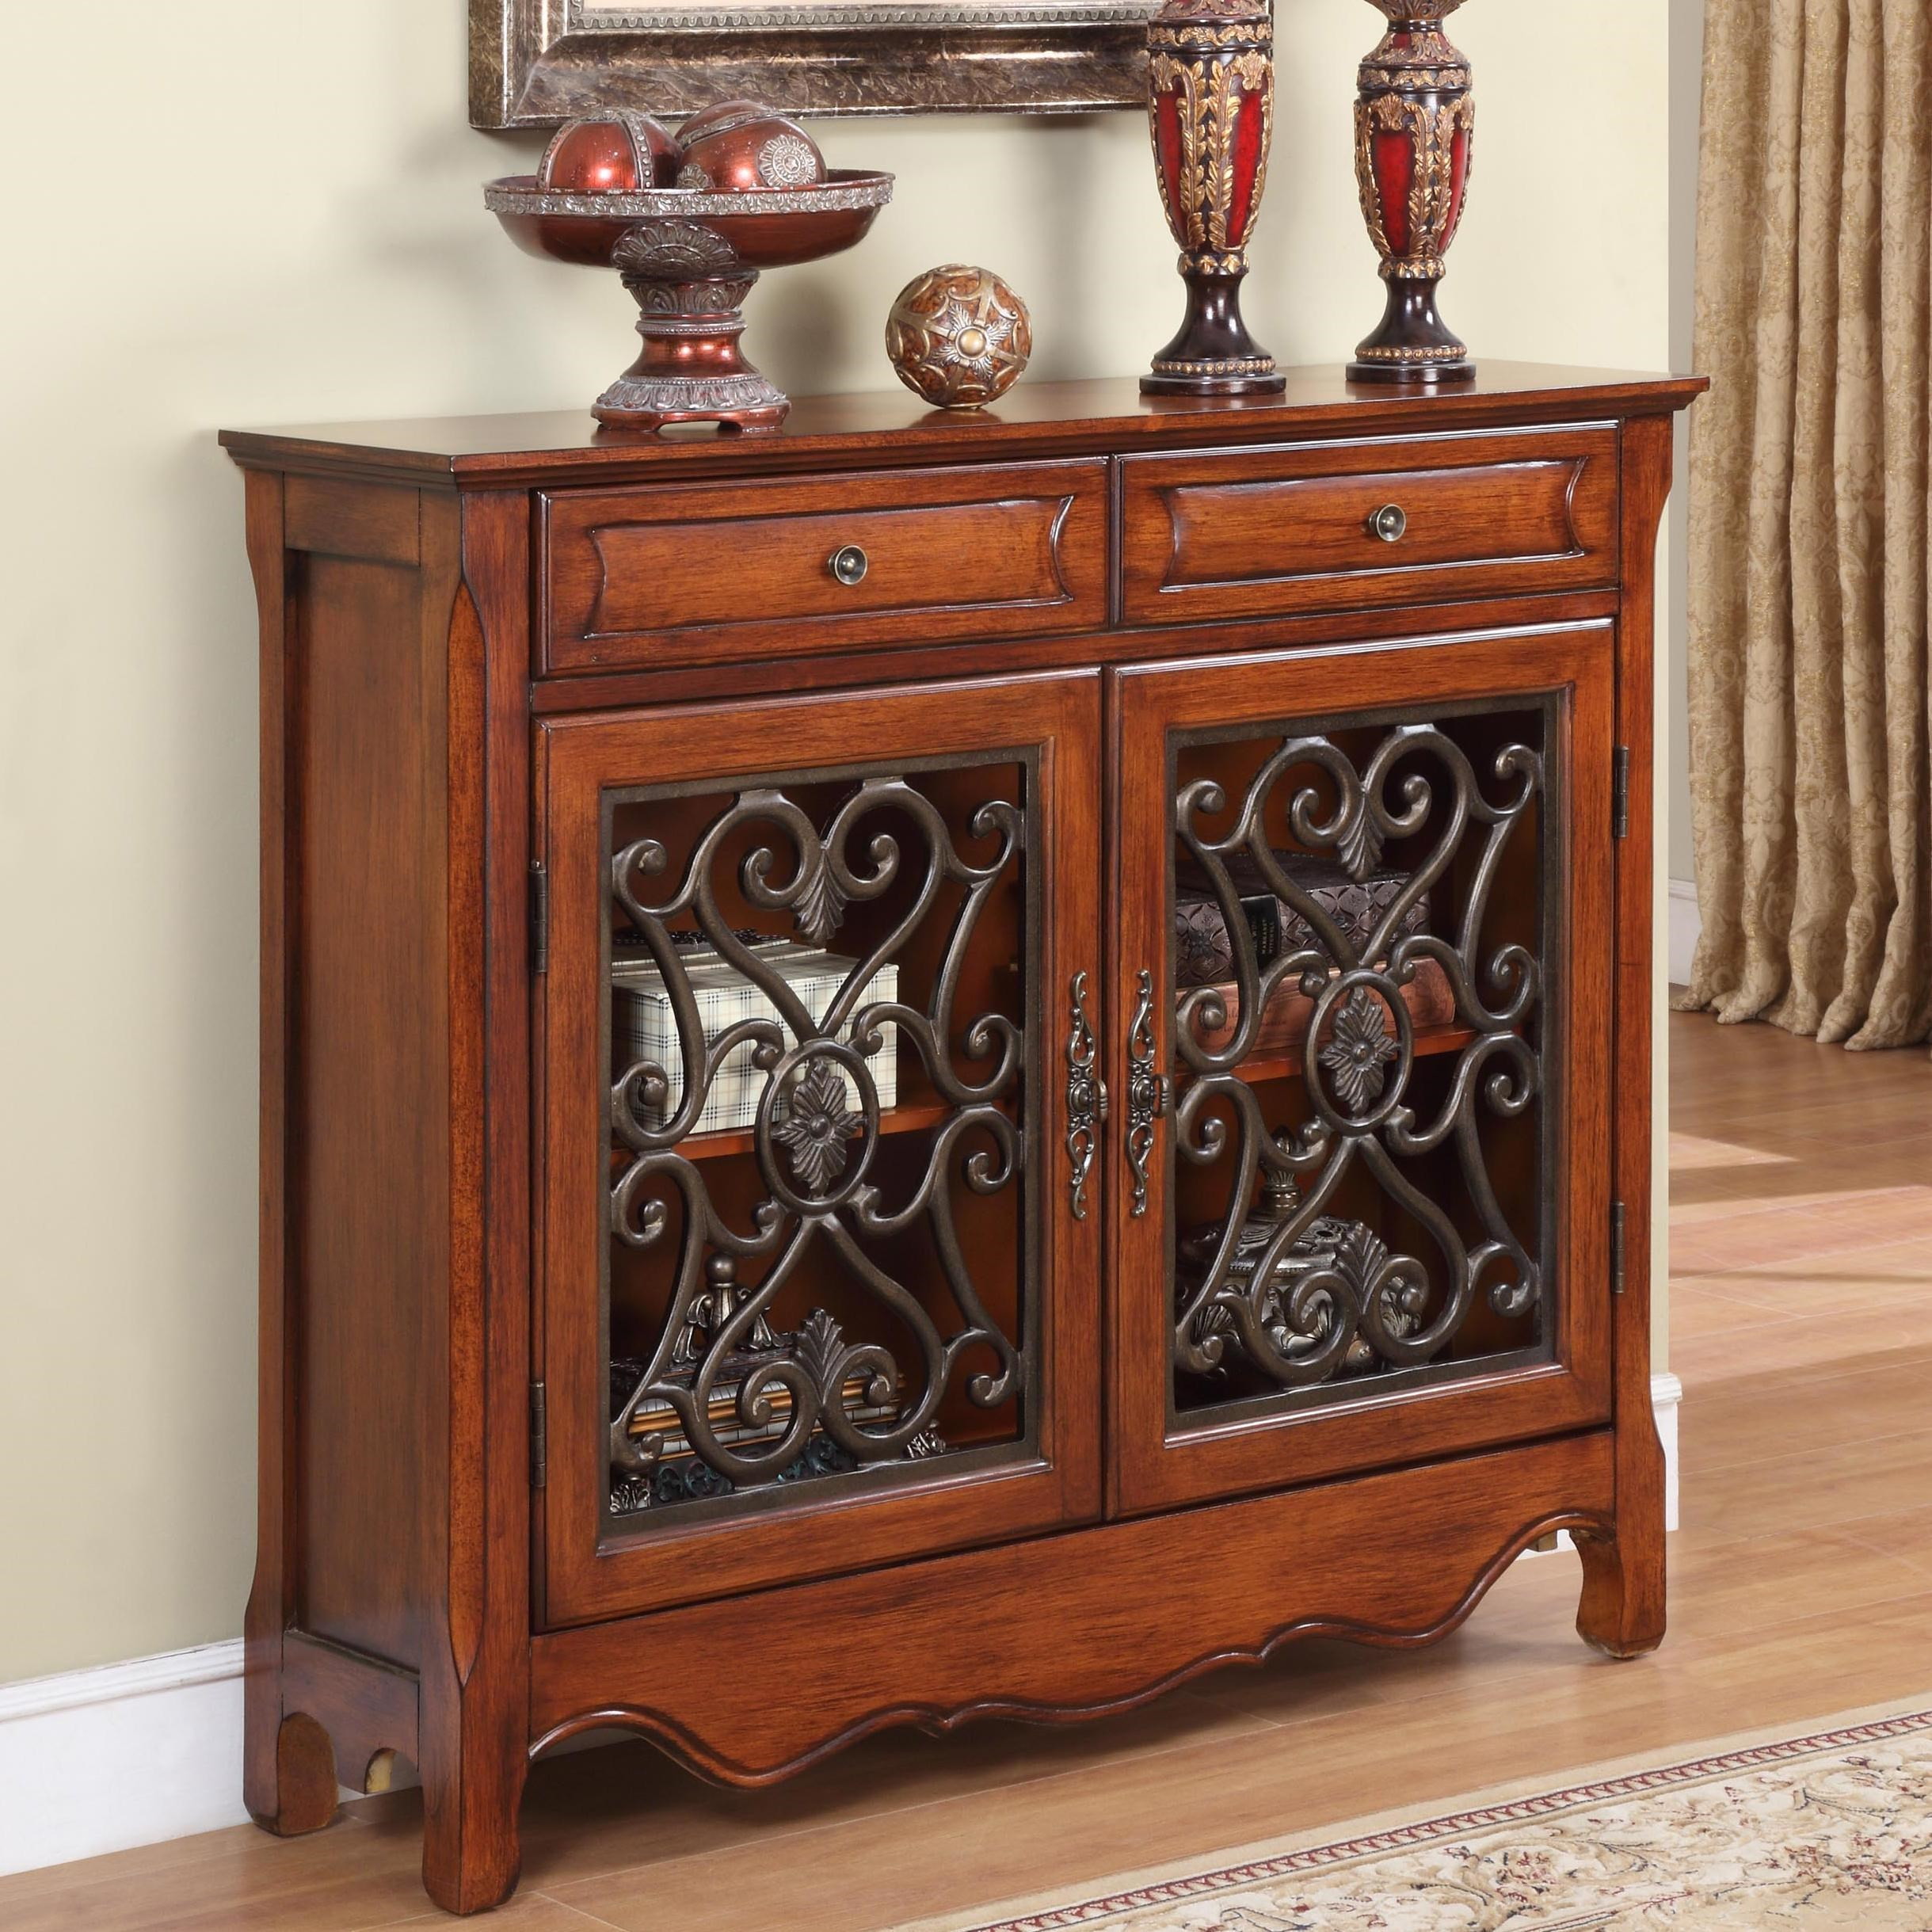 Superbe Powell AccentsLight Cherry Console Cabinet; Powell AccentsLight Cherry Console  Cabinet